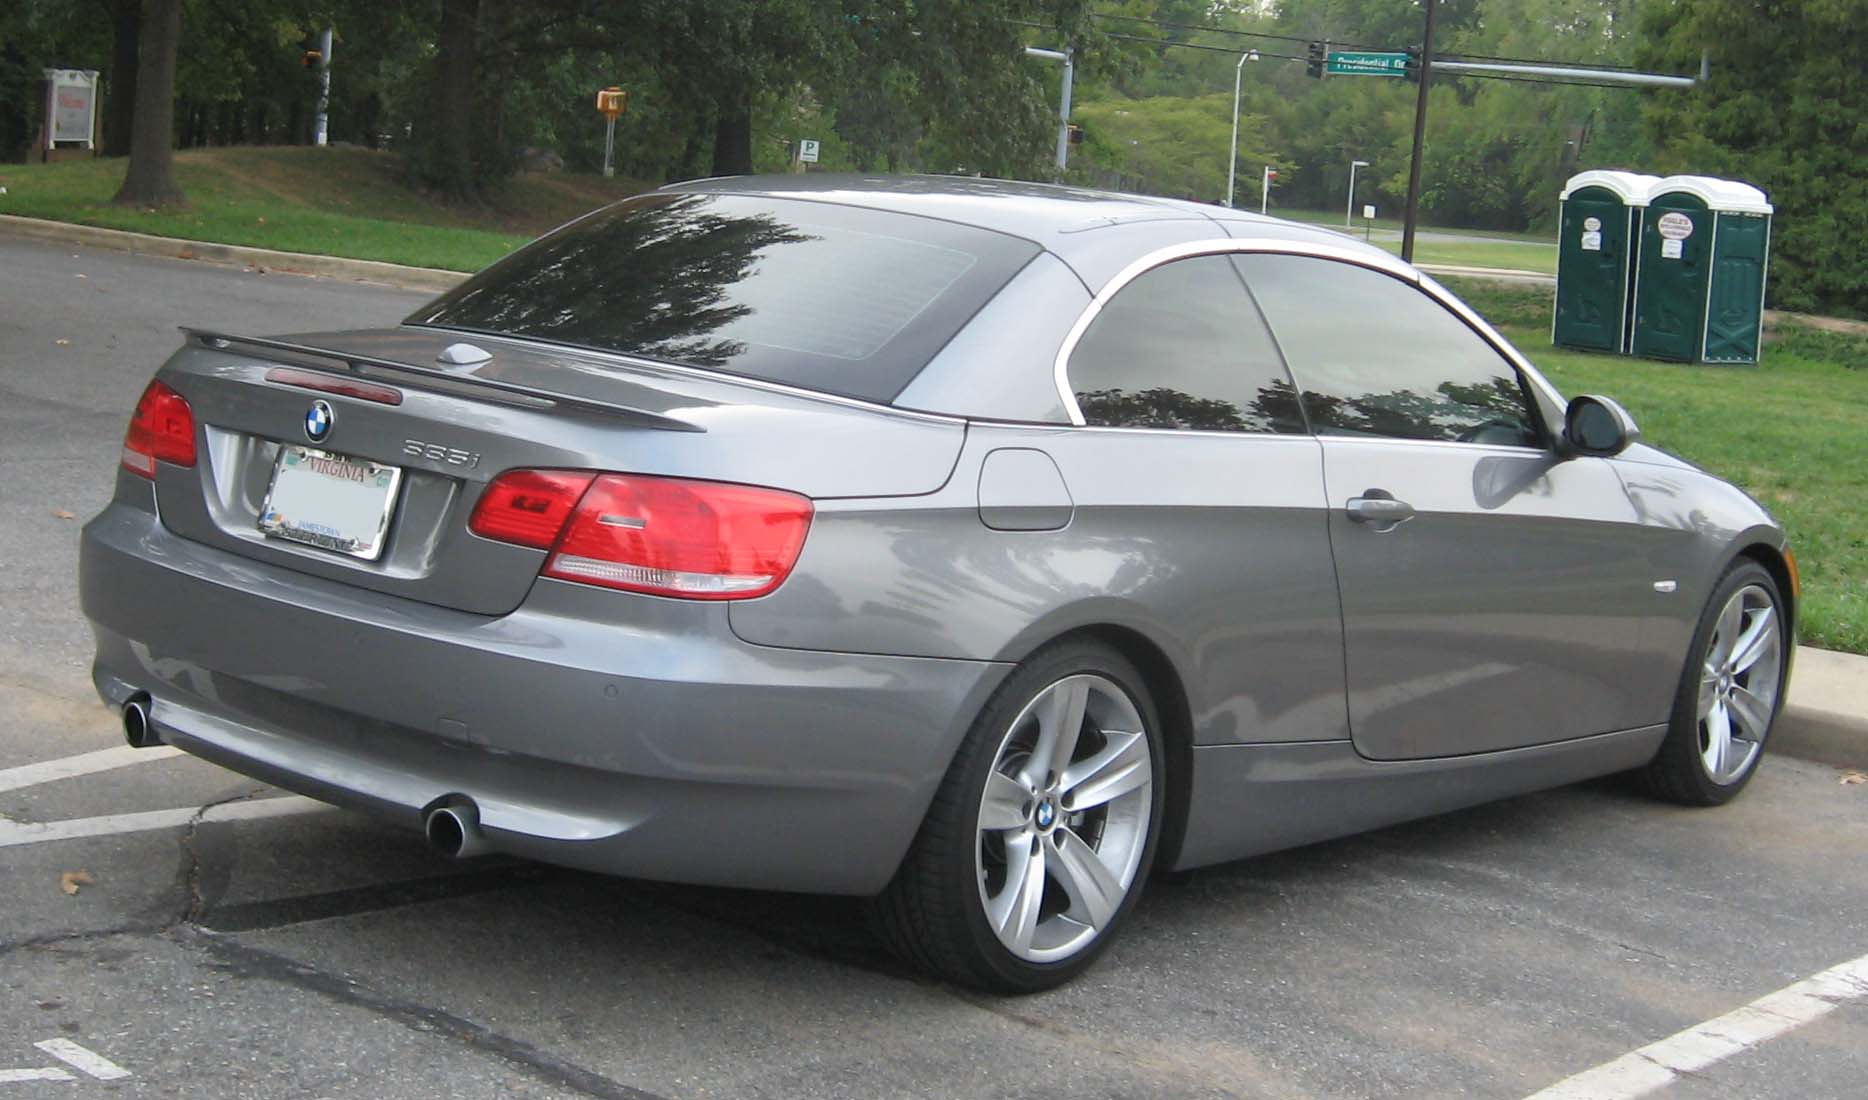 File:BMW-335i-convertible-rear.jpg - Wikimedia Commons